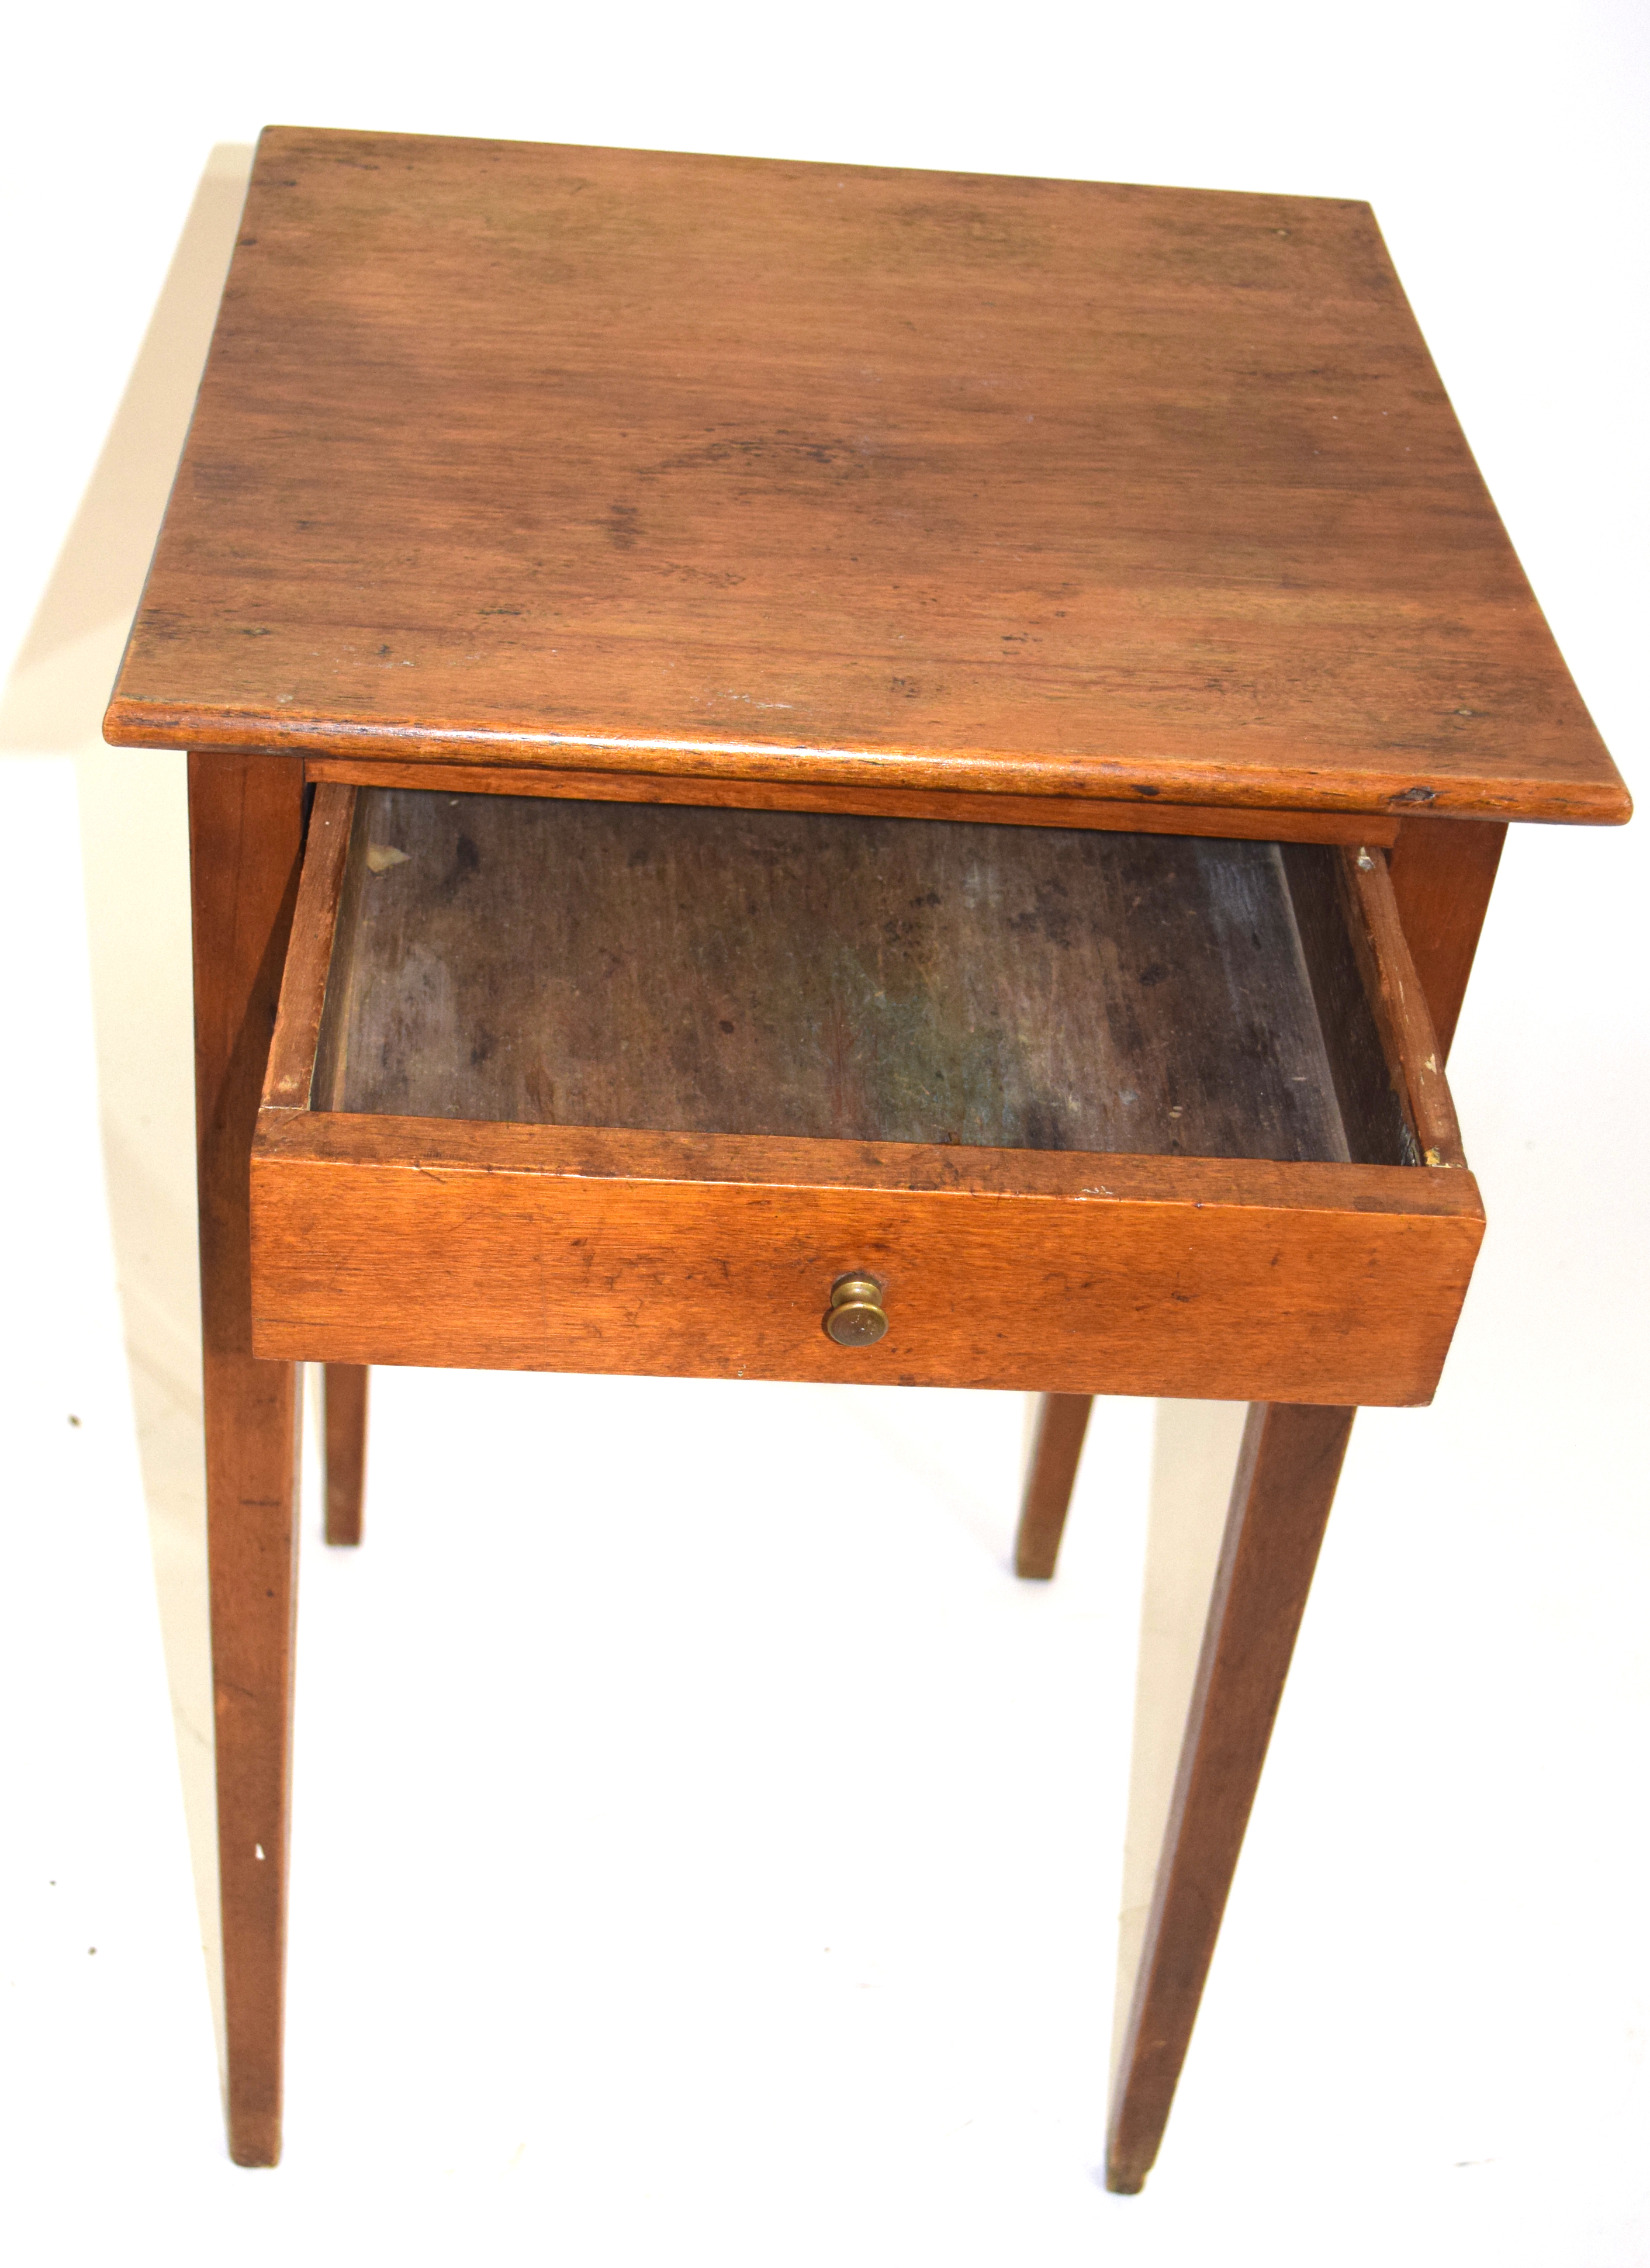 Small square stained table with drawer 70cm in height Condition: Structurally sound but requires - Image 2 of 4